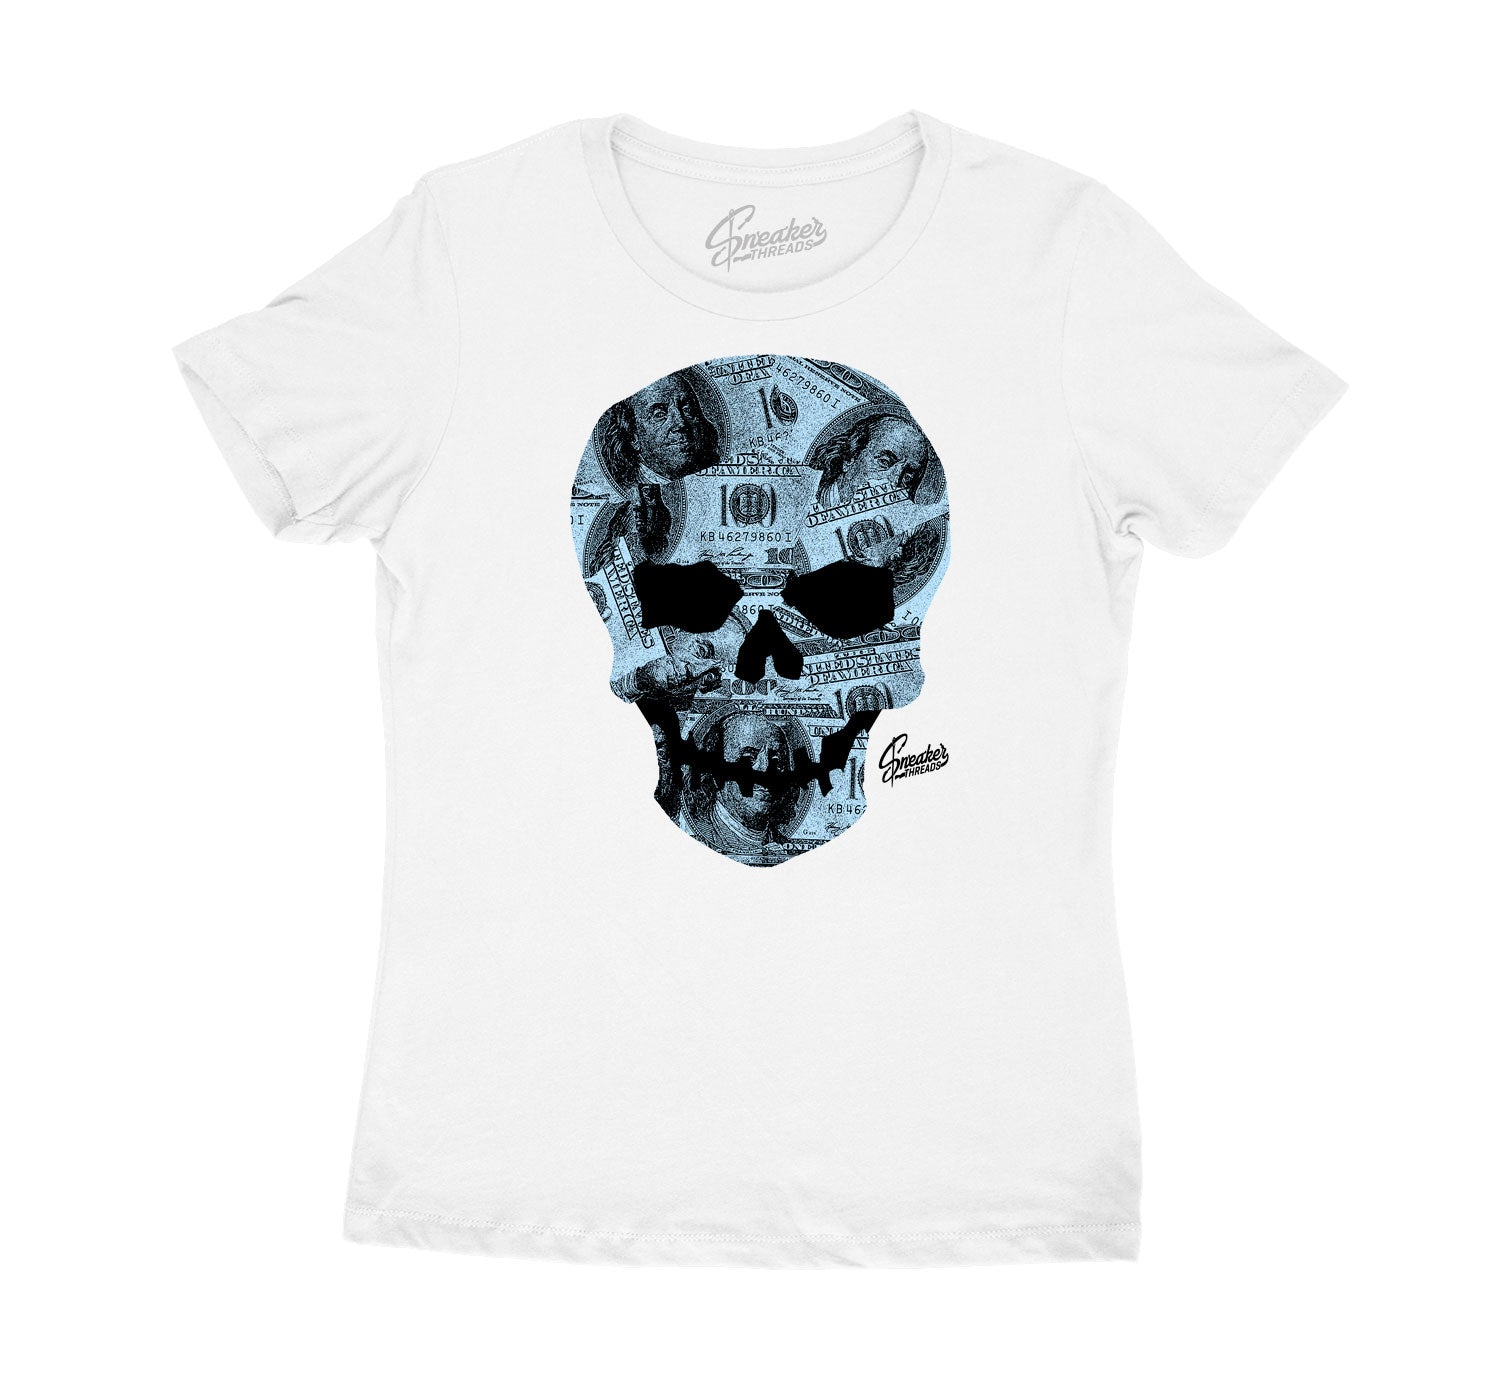 Womens tee matches Jordan 11 legend blue sneaker collection